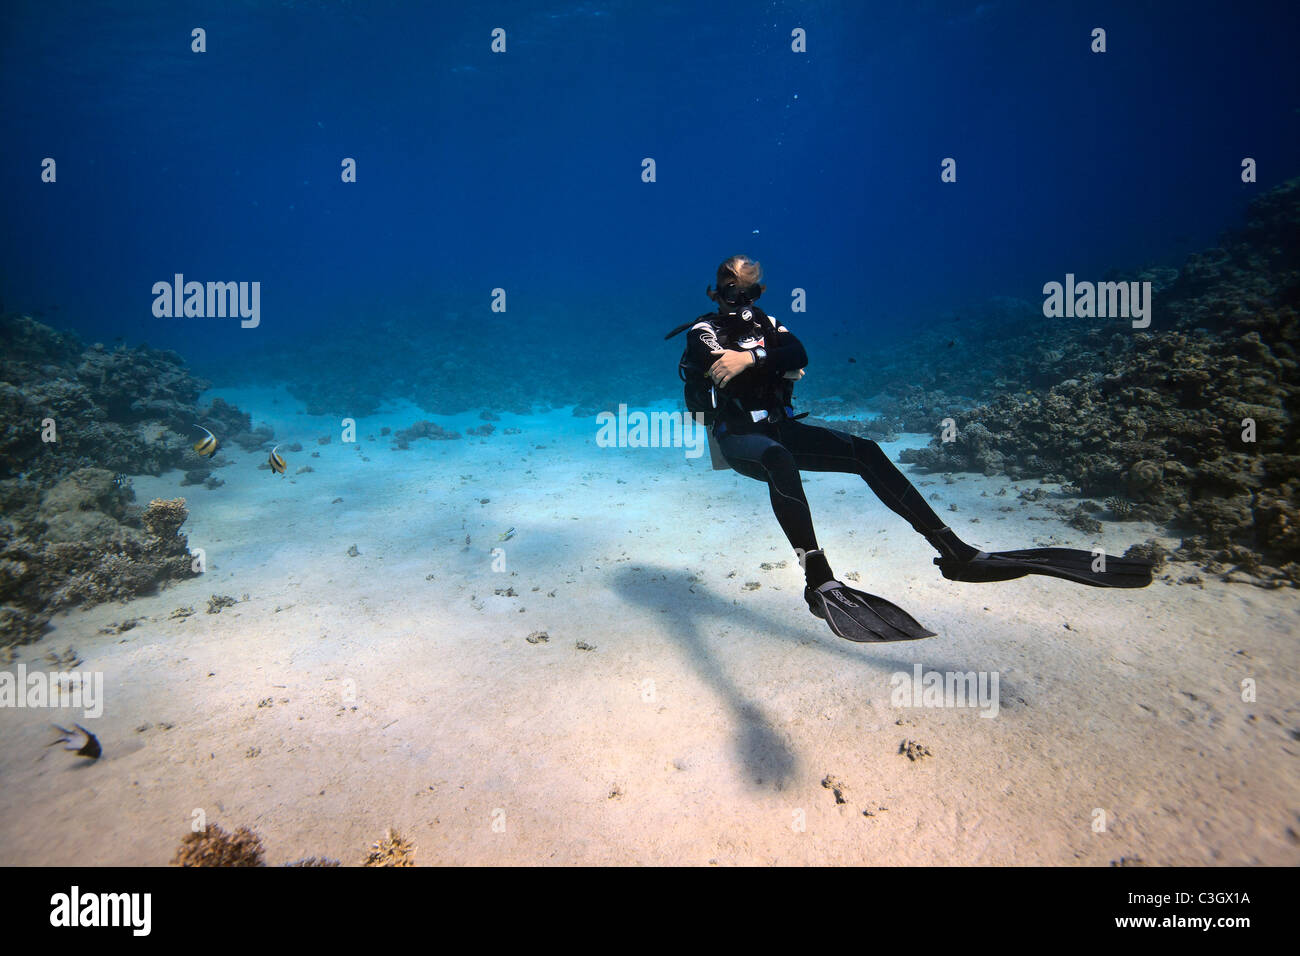 A scuba diver demonstrates impressive bouyancy while waiting for his charges to catch up during a guided dive. Red - Stock Image